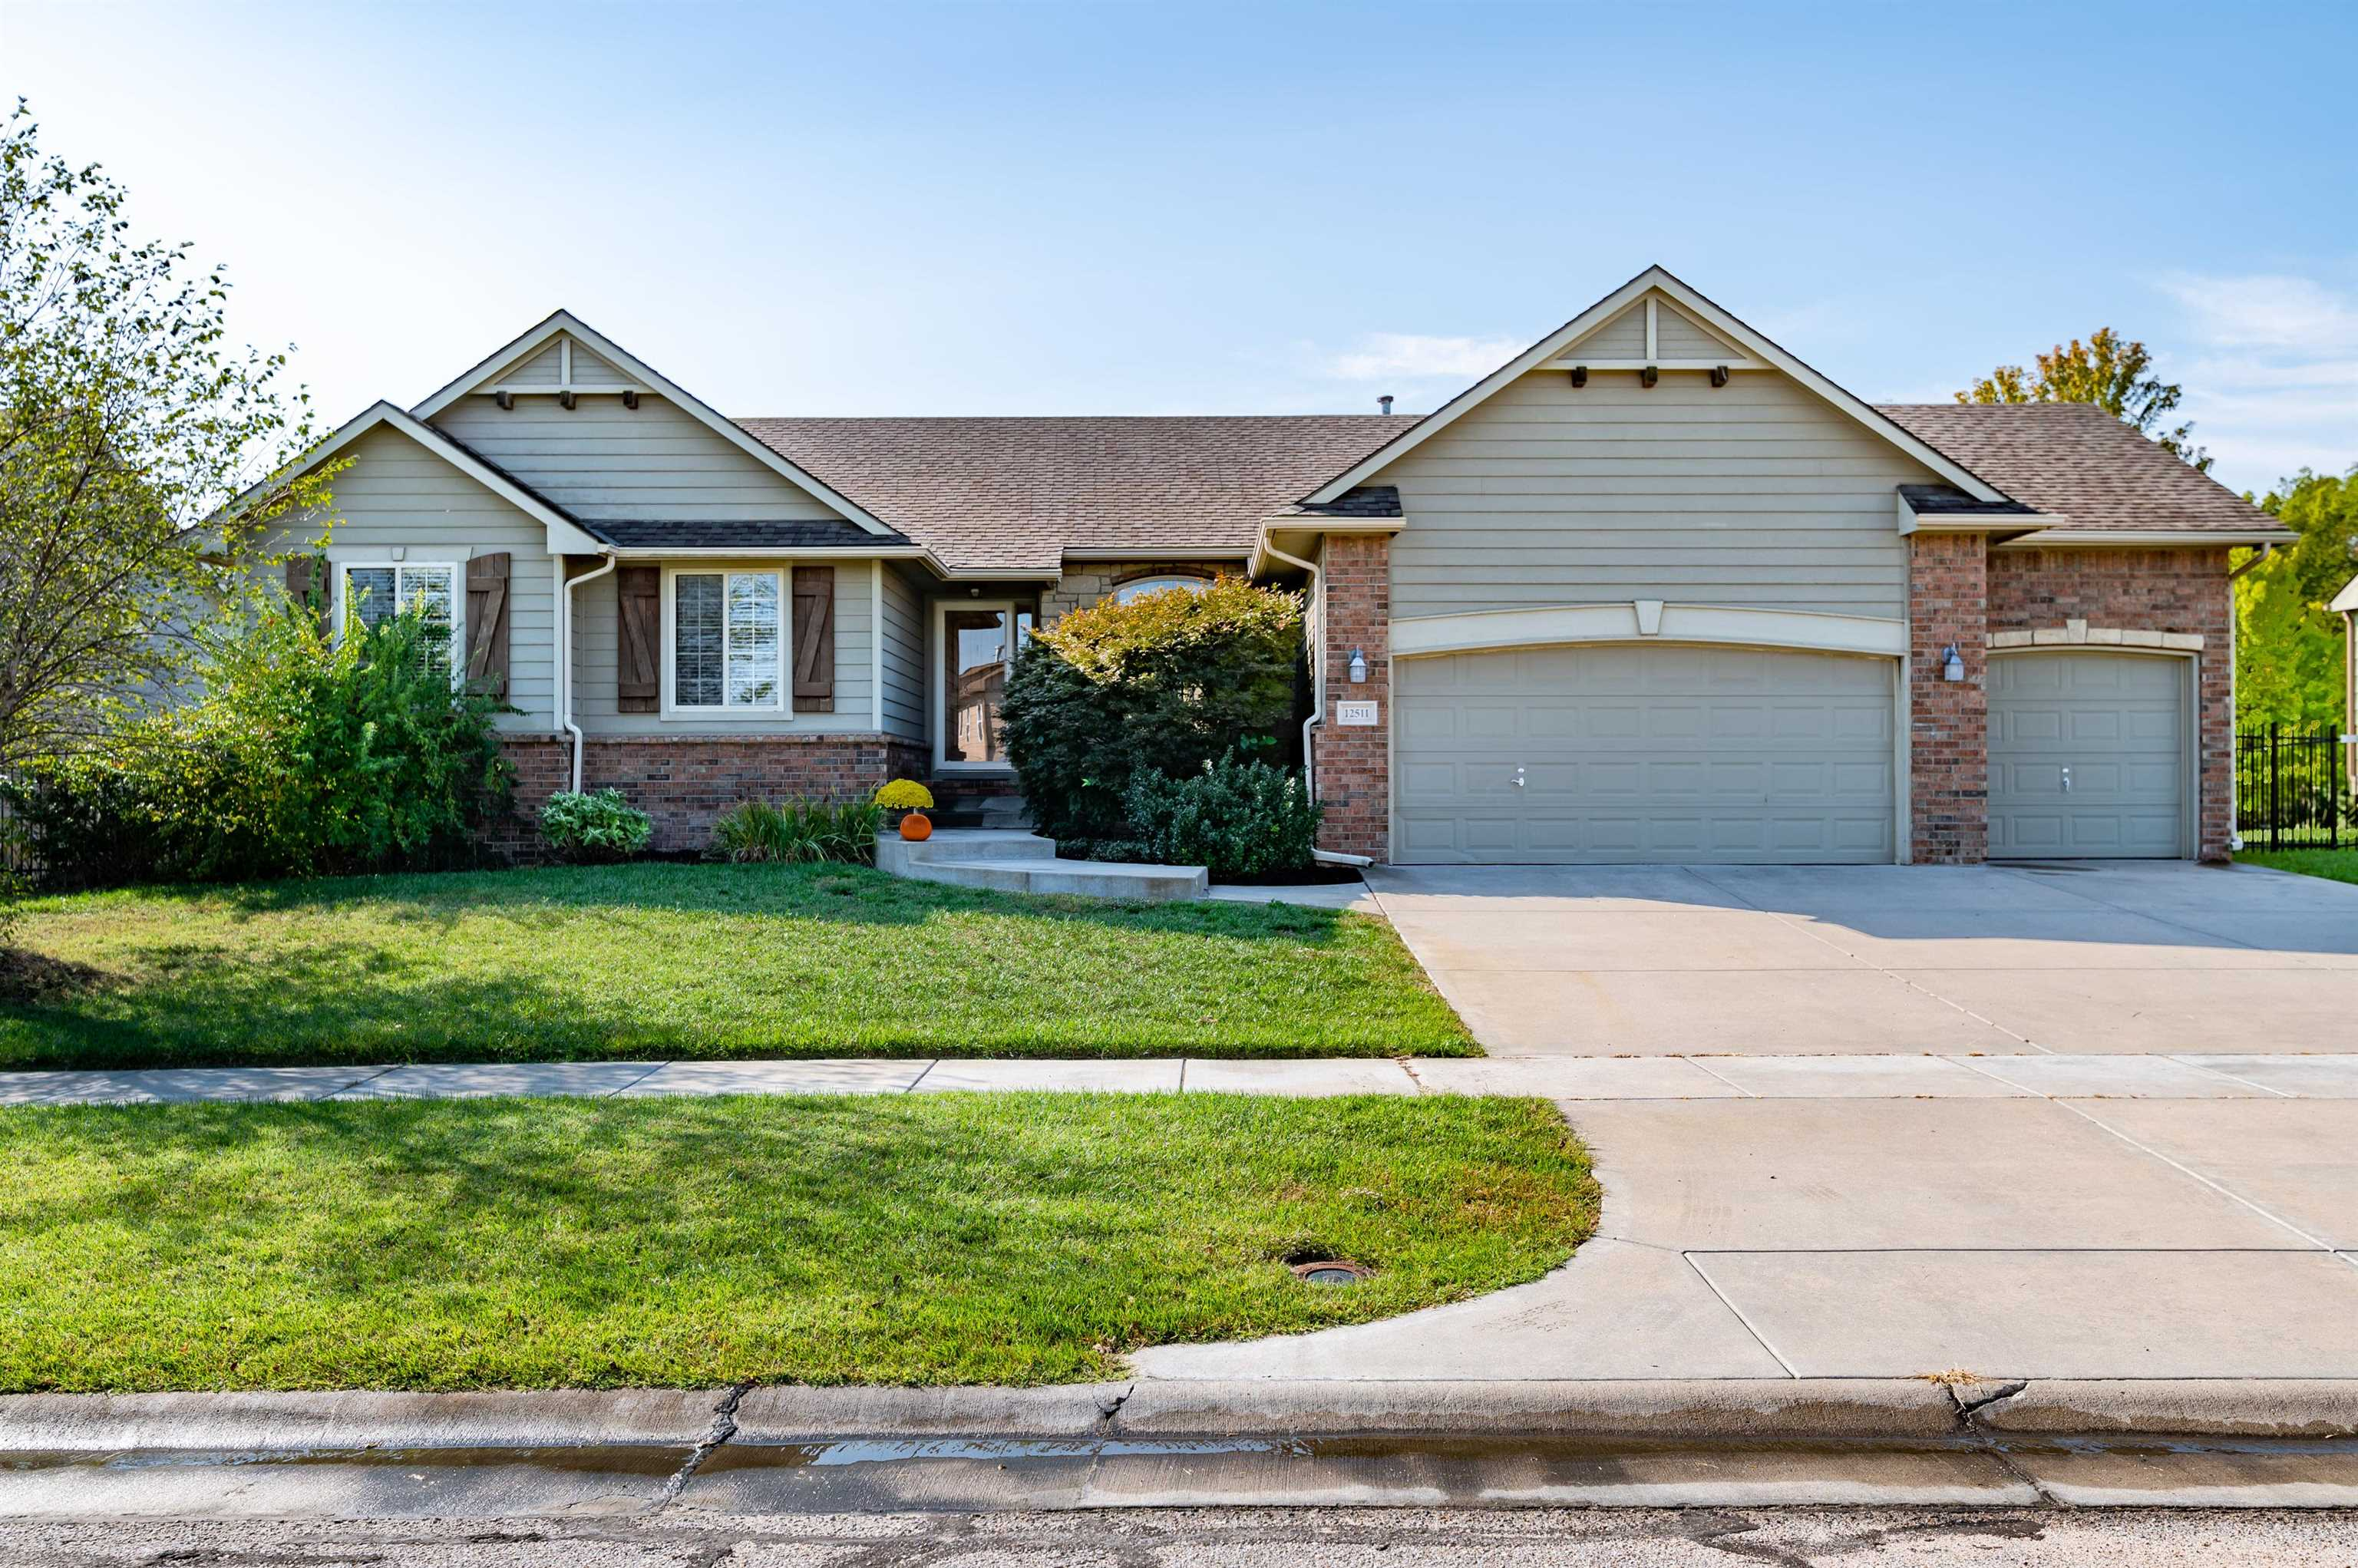 Beautiful home with over 2,600 square feet with 4 bedrooms with possible 5th bedroom in basement, 3